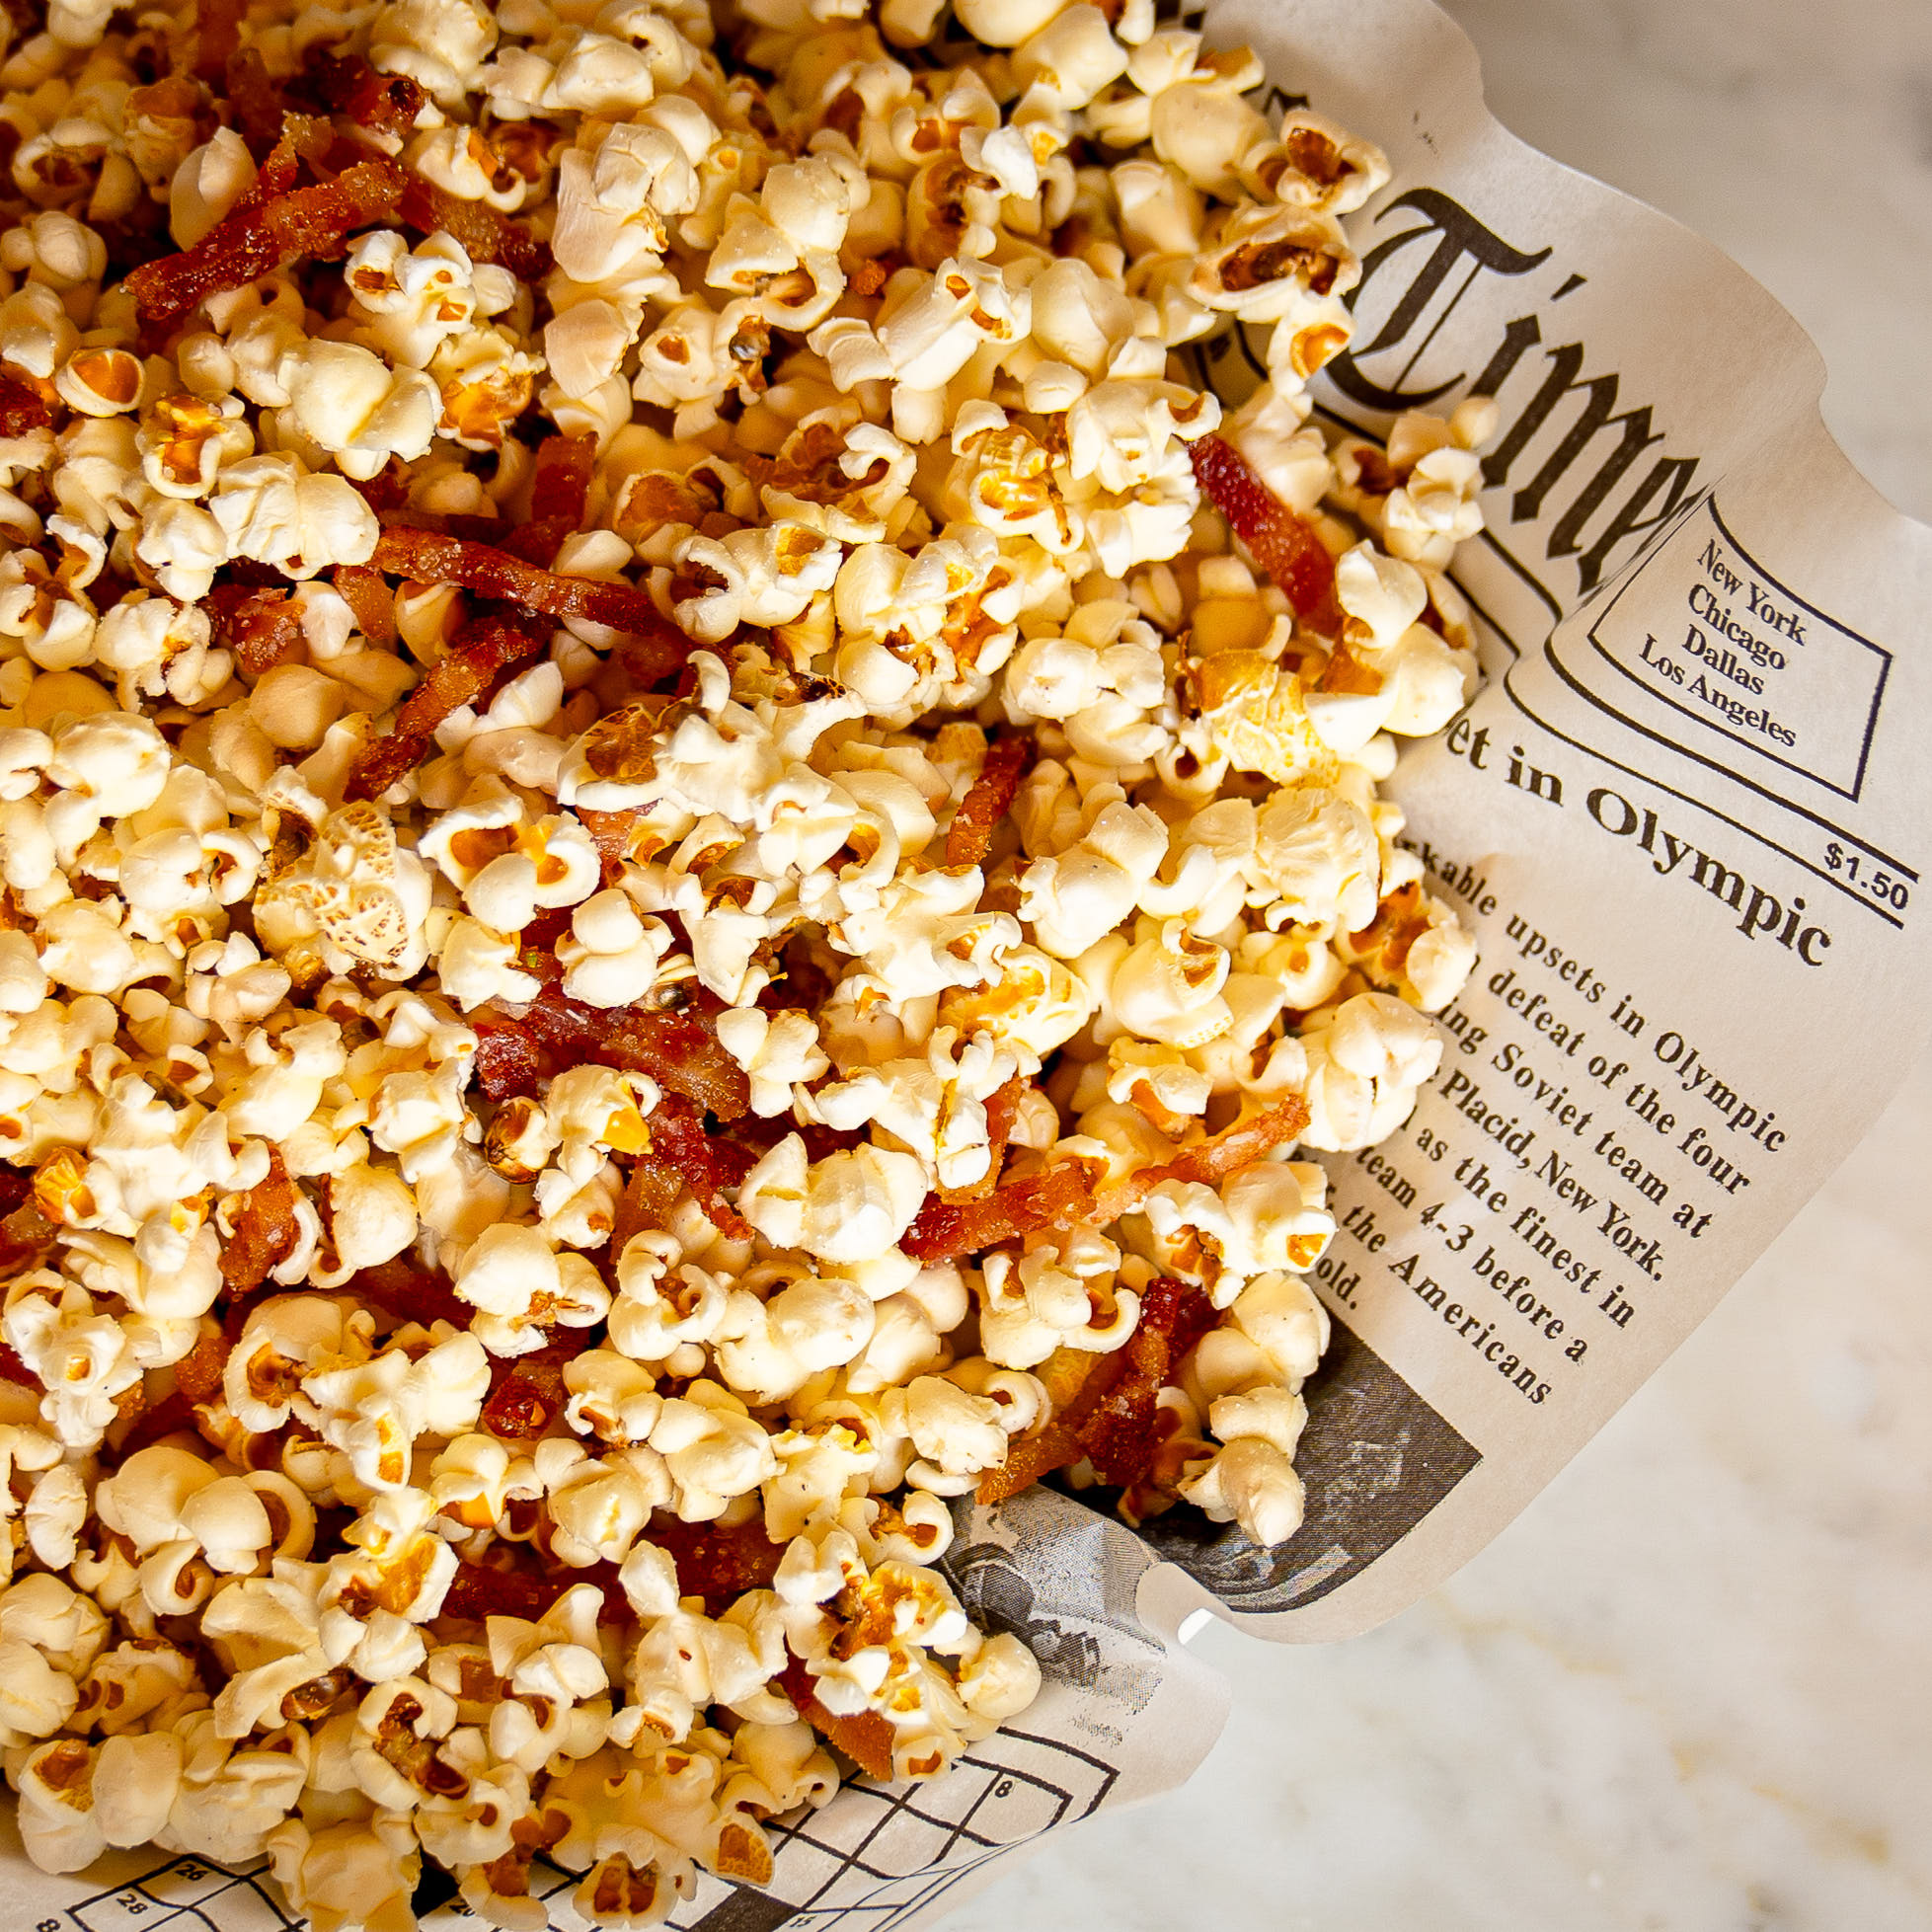 Pictured is a basket of popcorn and sliced bacon